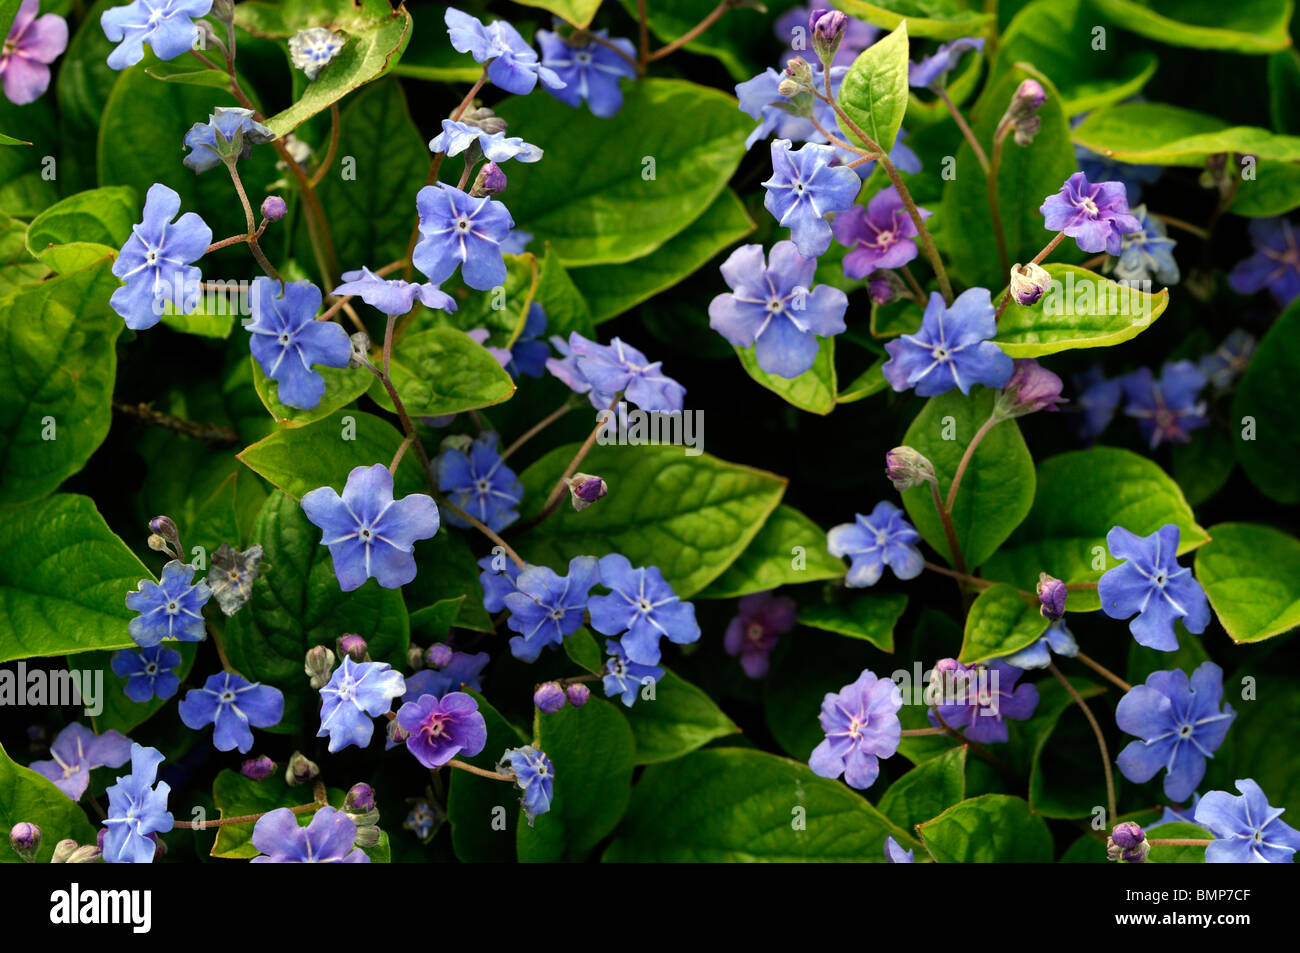 Omphalodes verna Blue eyed Mary pale blue flowers perennial bloom blooming blossom summer groundcover Stock Photo